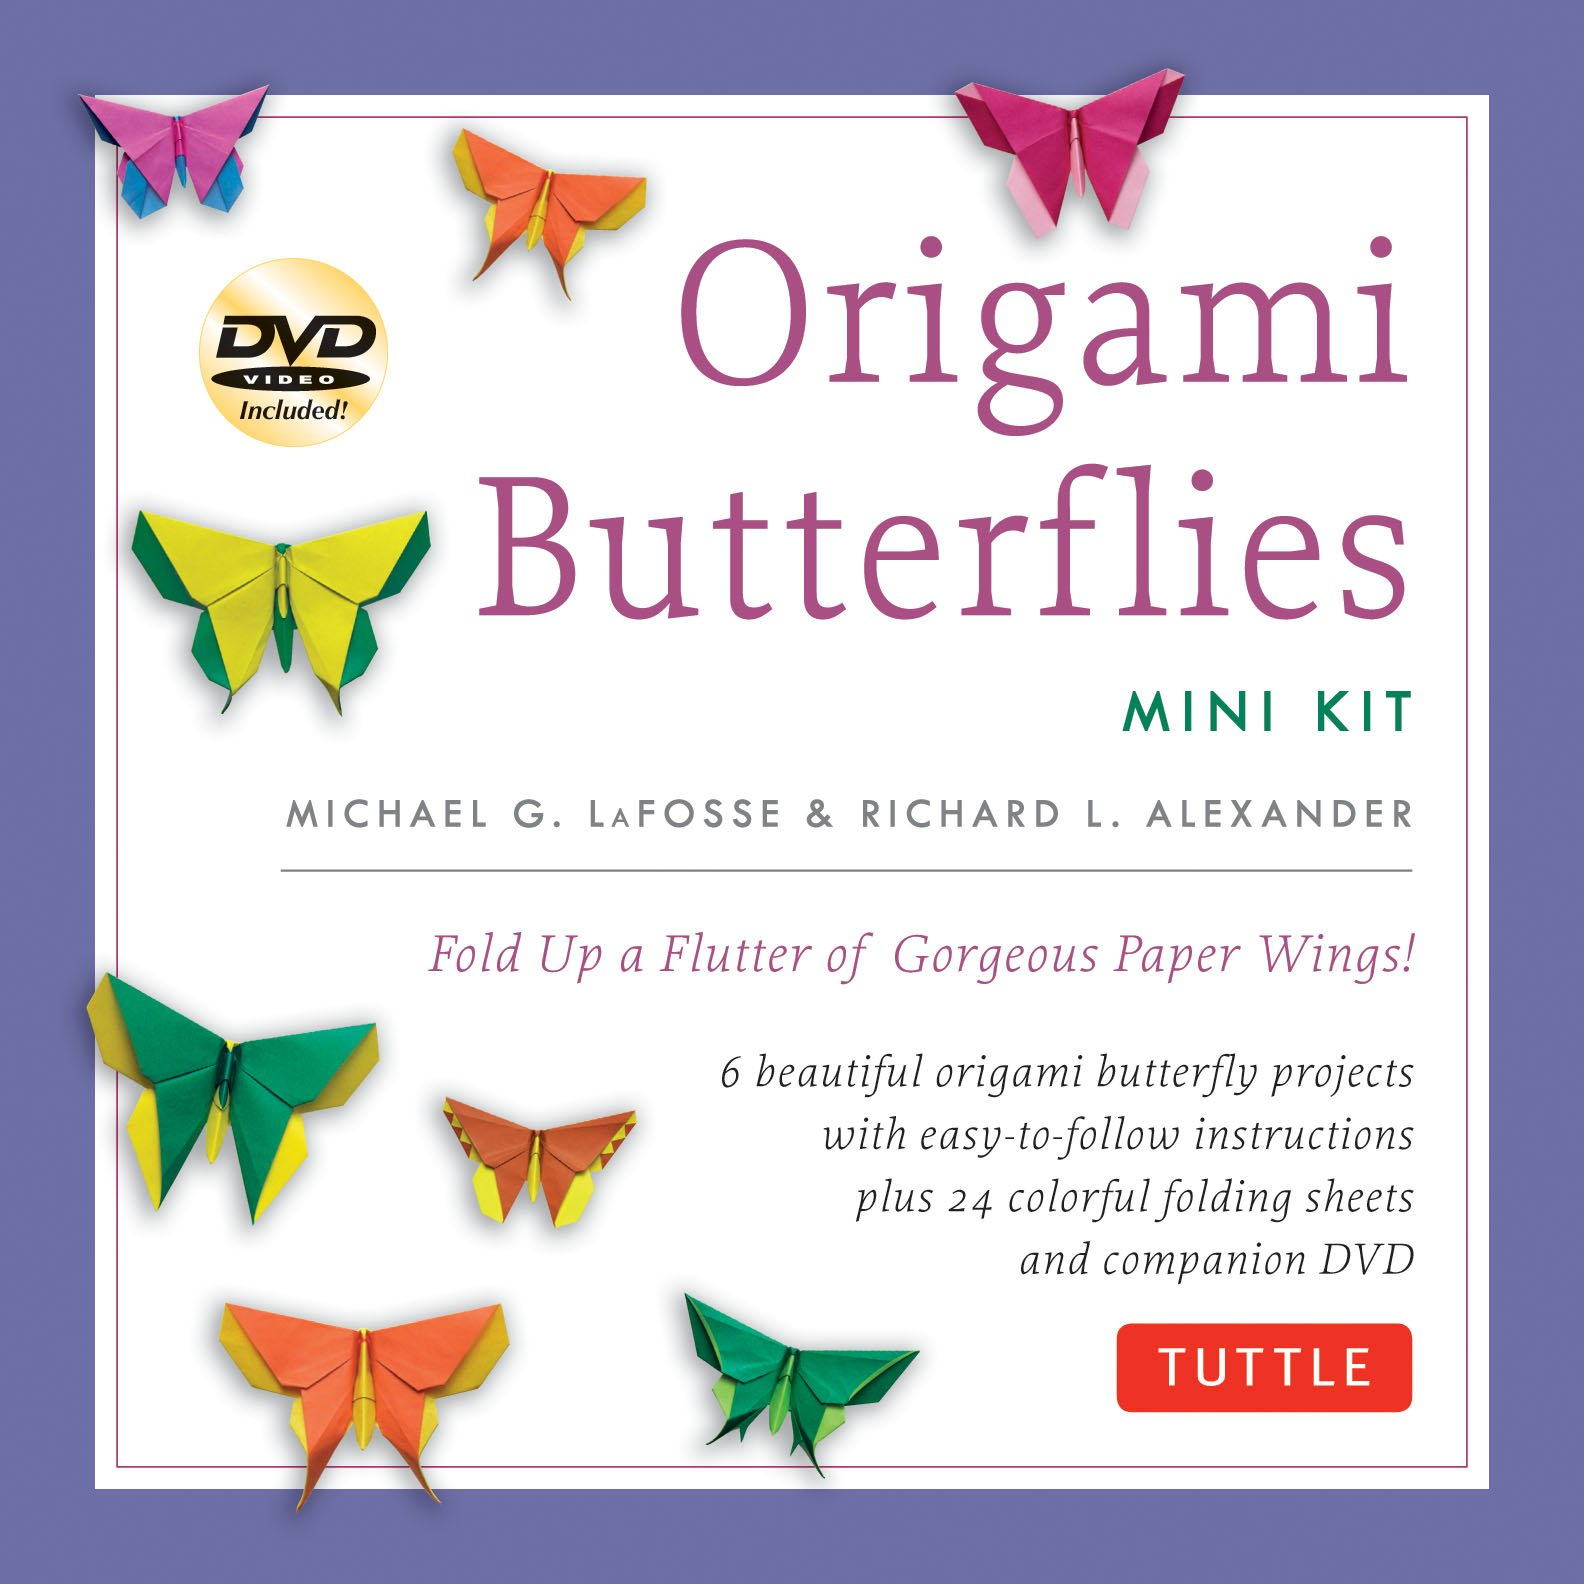 Origami Butterflies Mini Kit: Fold Up a Flutter of Gorgeous Paper Wings!: Kit with Origami Book, 6 Fun Projects, 32 Origami Papers and Instructional DVD PDF